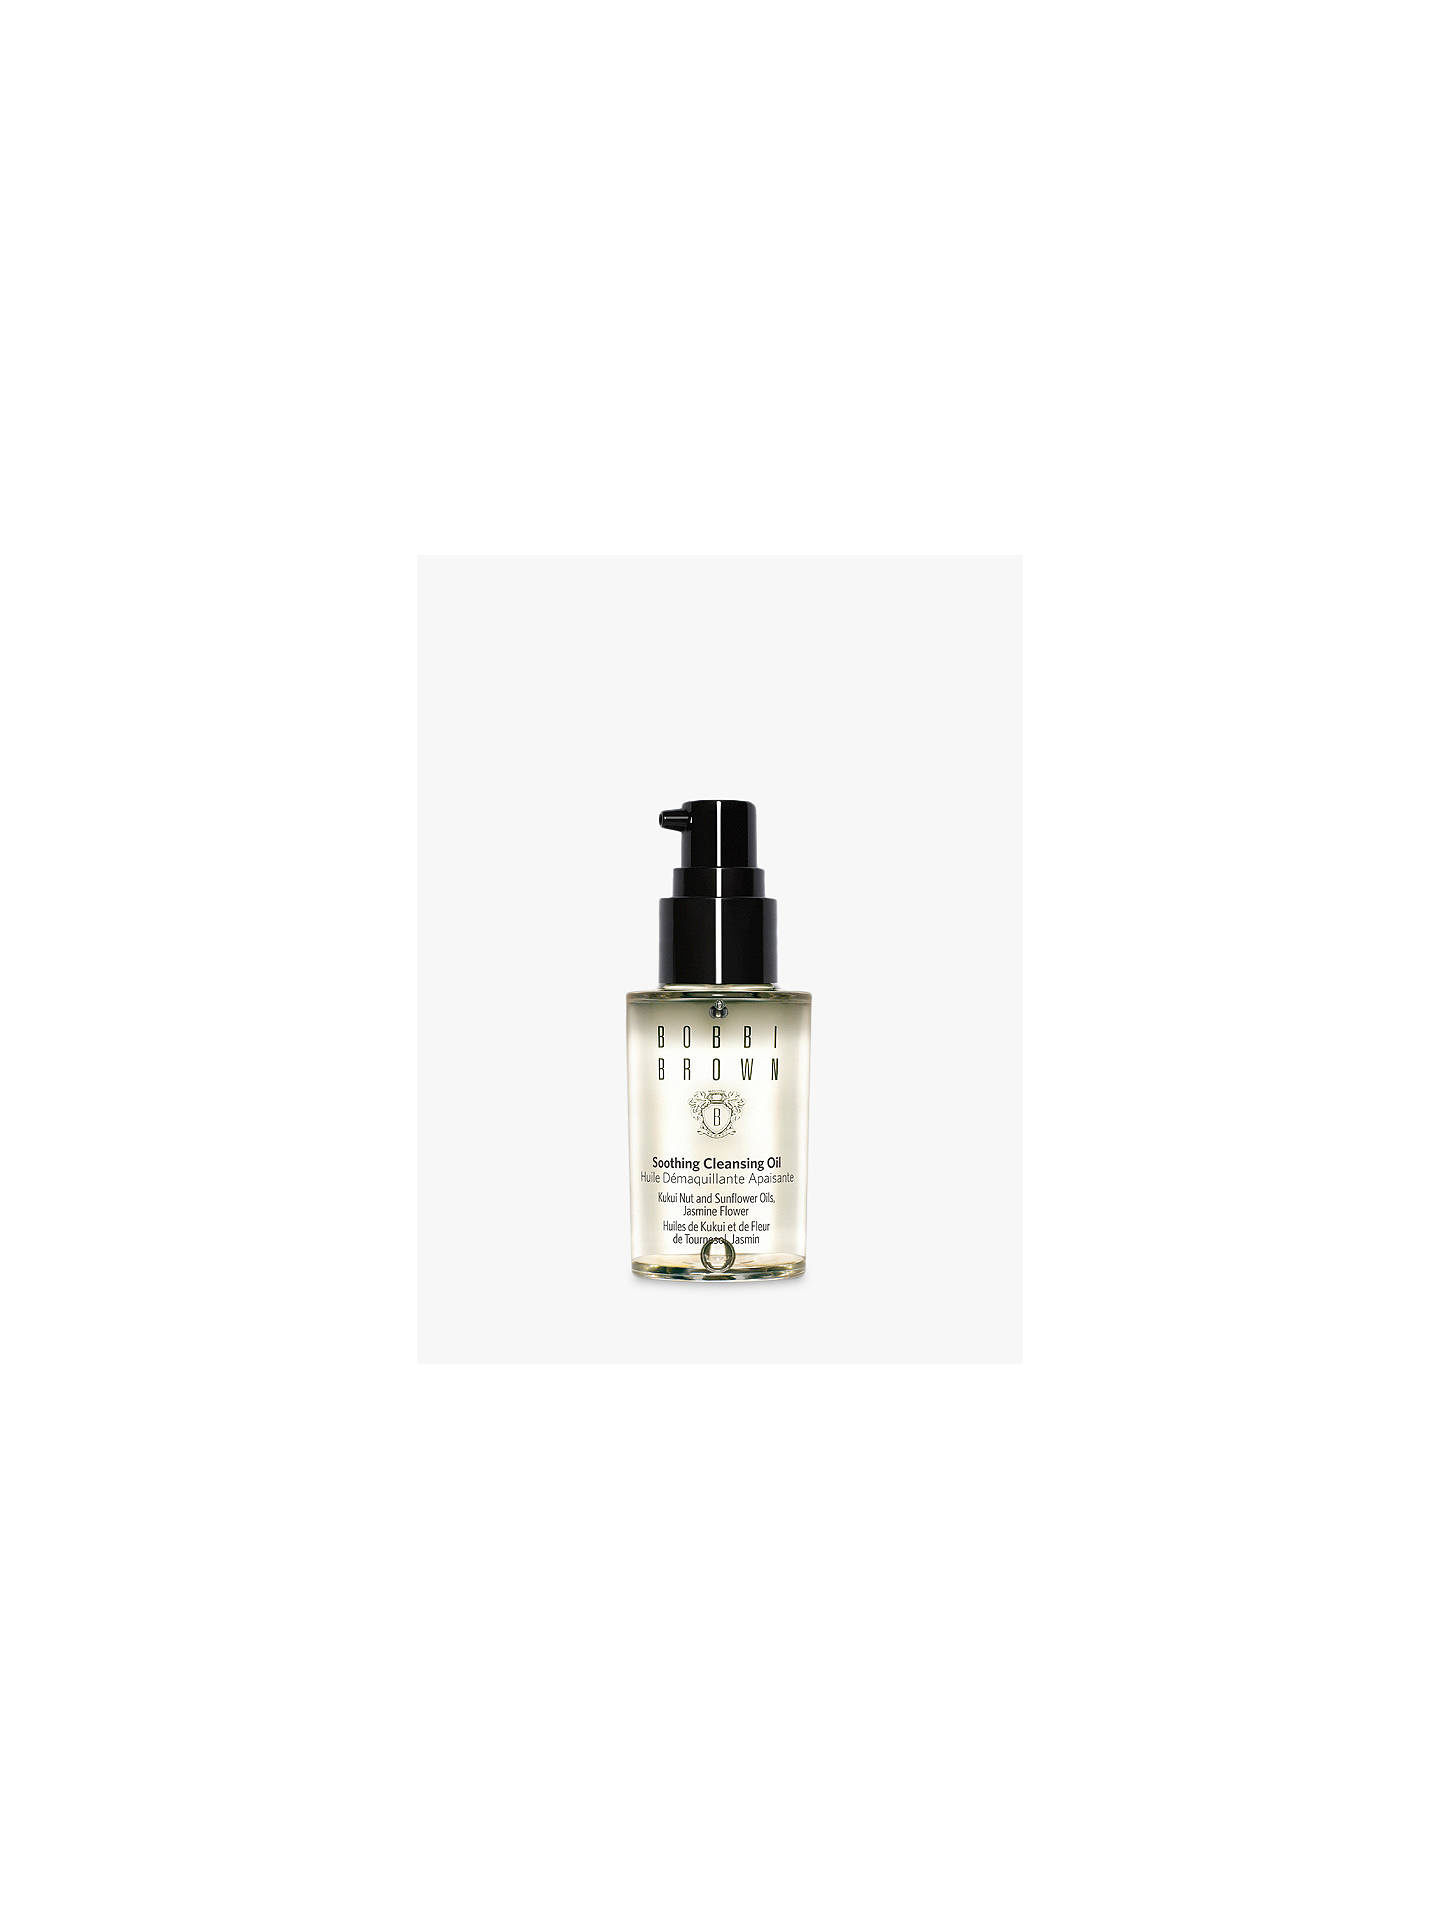 BuyBobbi Brown Soothing Cleansing Oil, 30ml Online at johnlewis.com